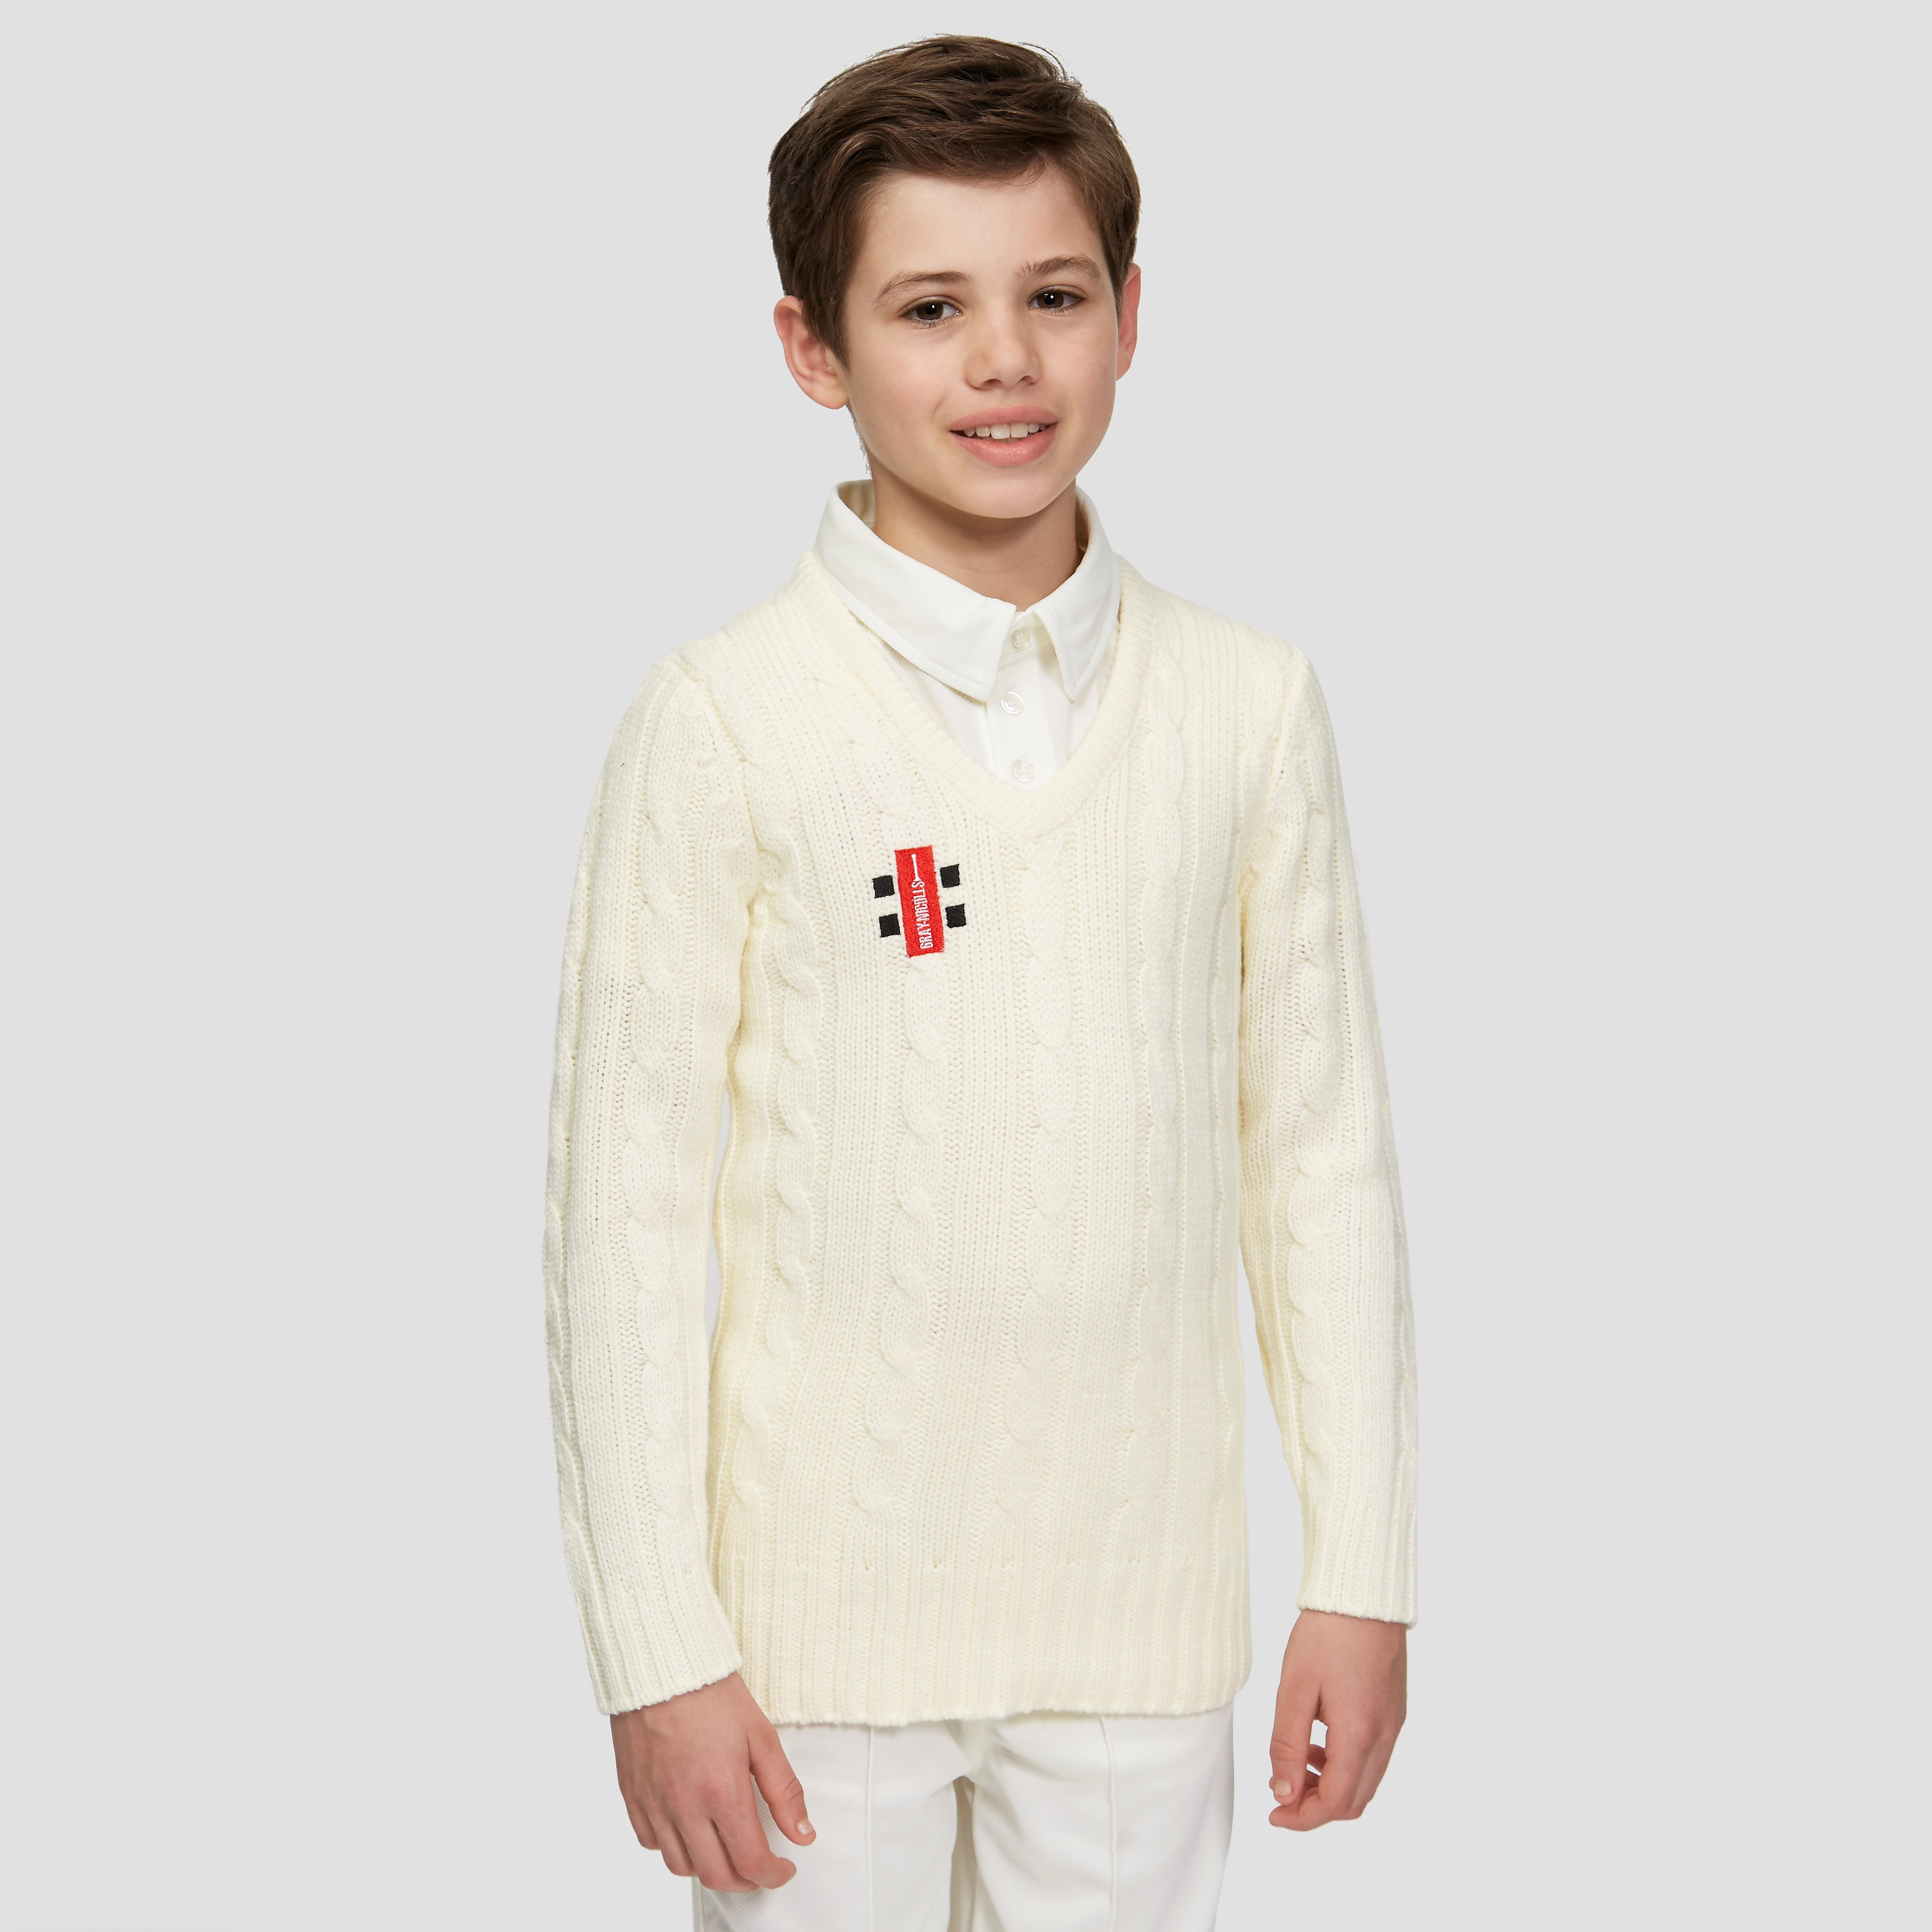 Gray-Nicolls Knitted Acrylic Junior Cricket Sweater